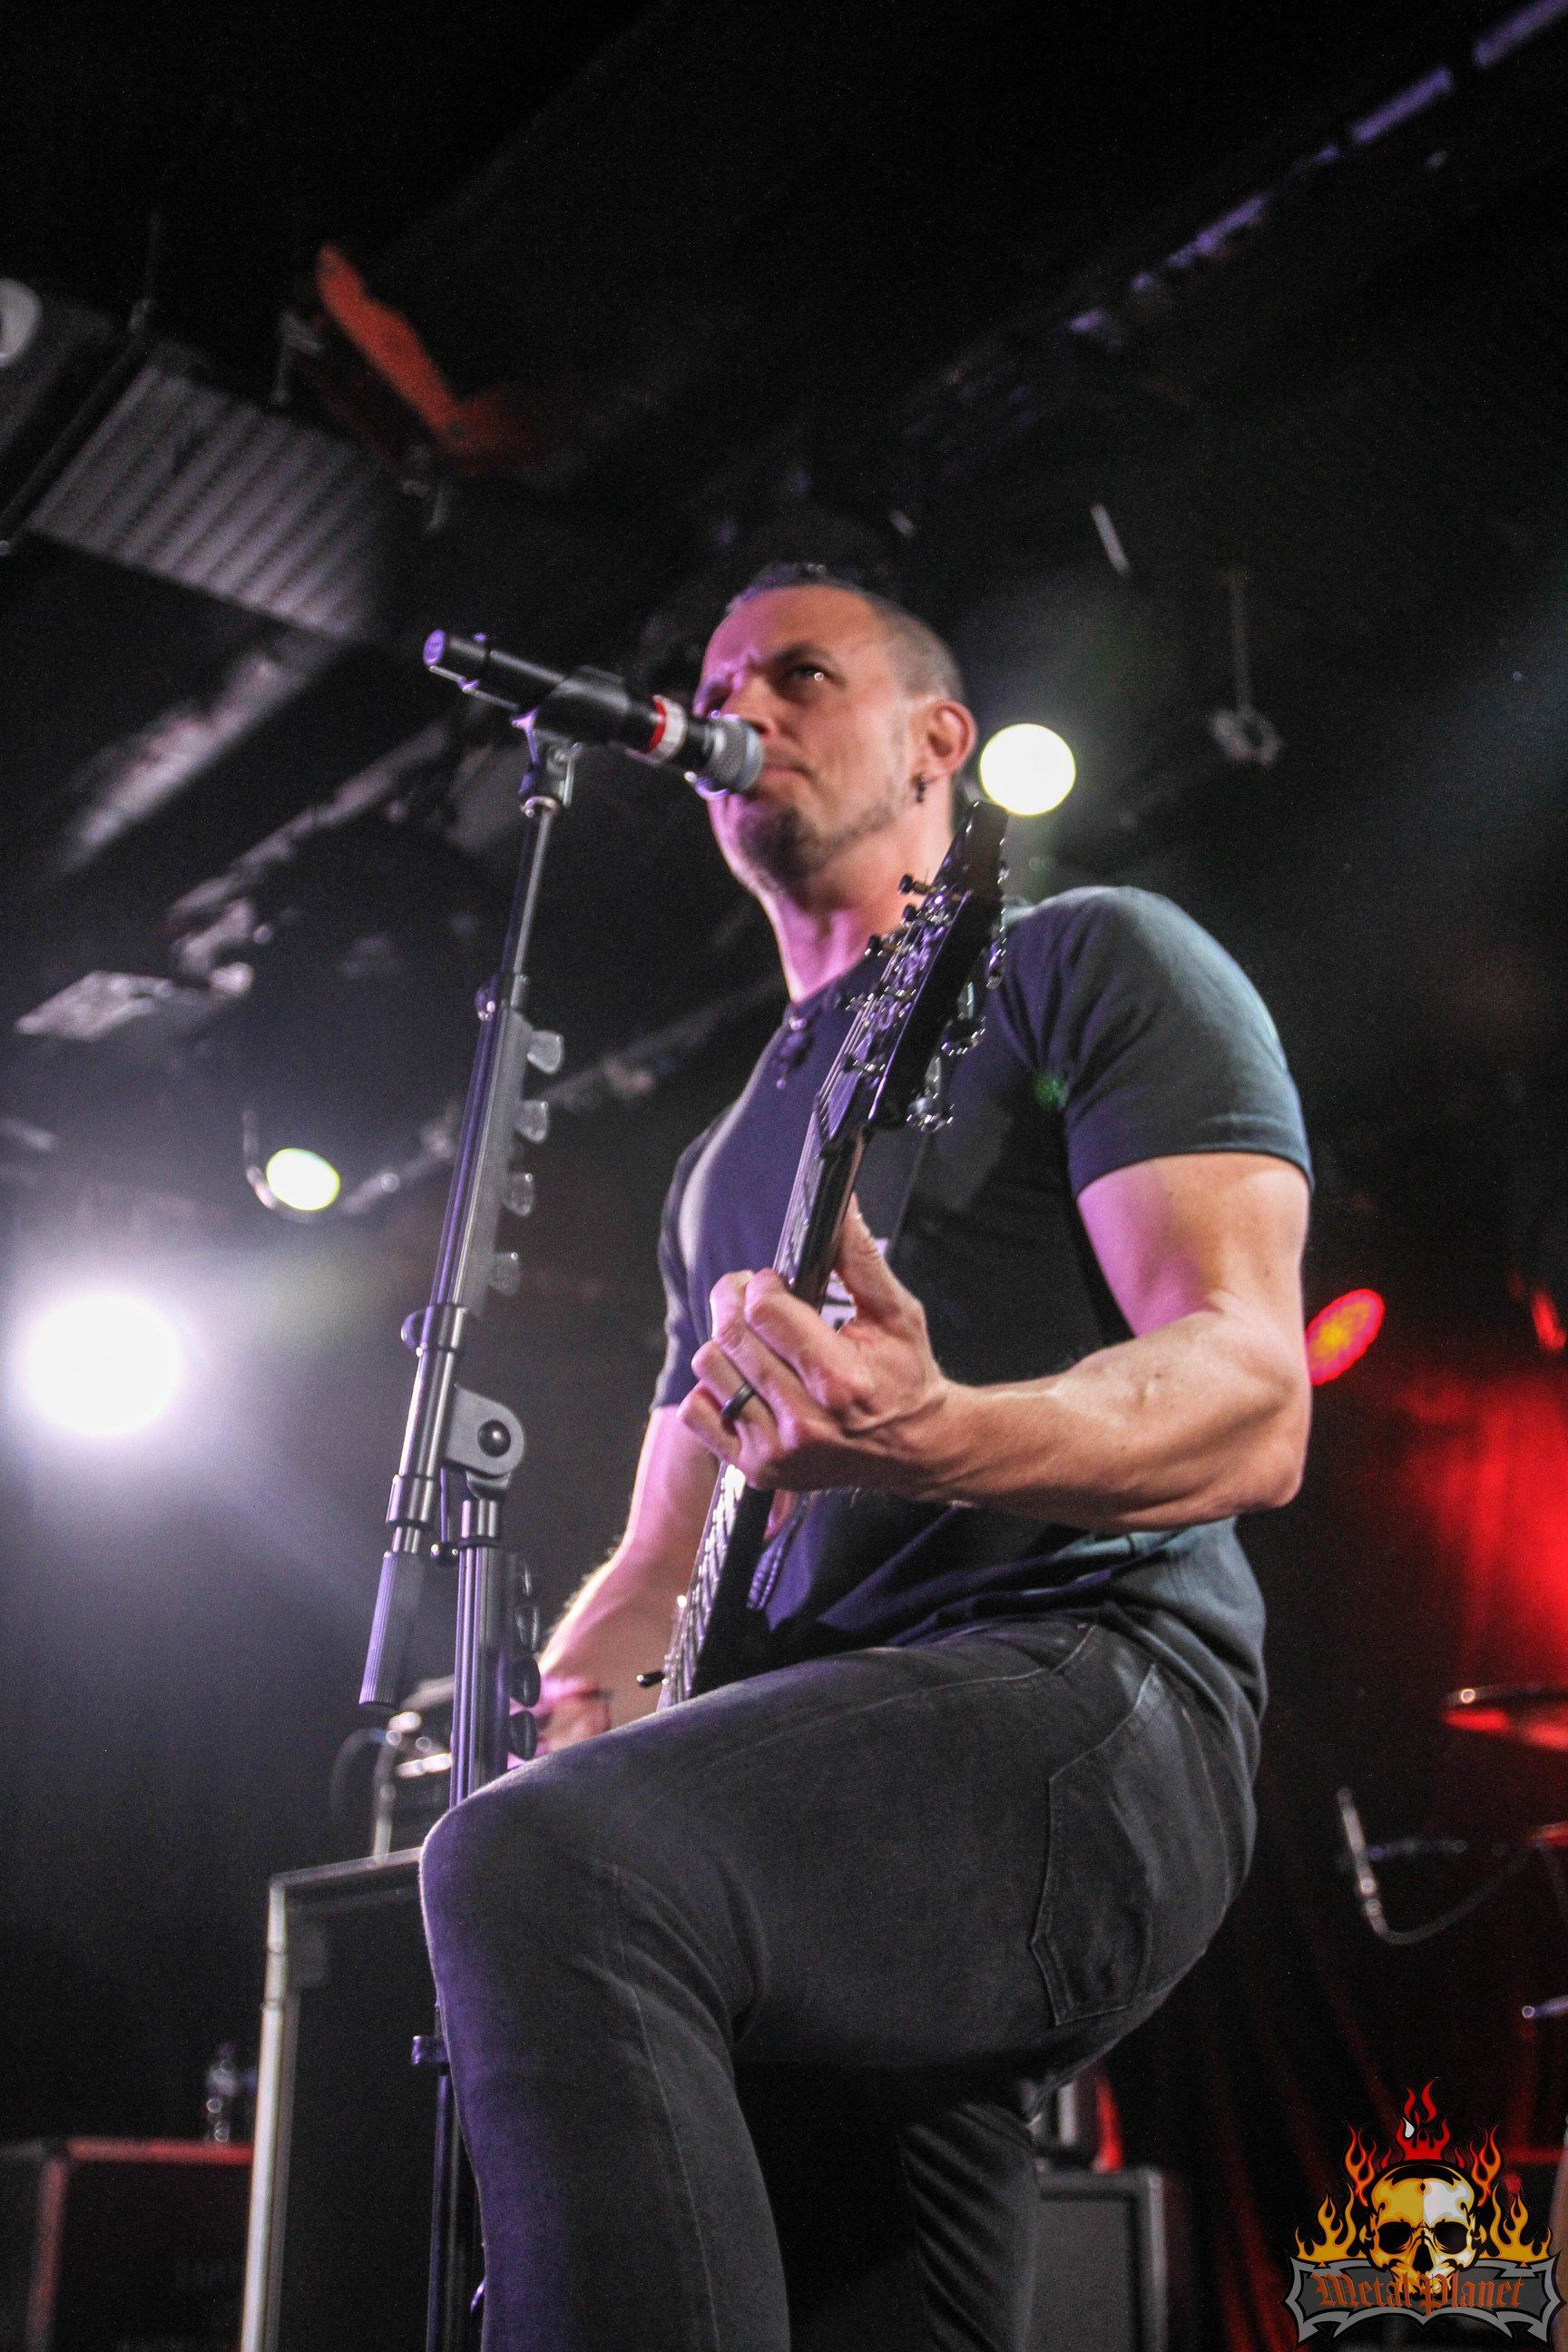 Tremonti in the Limelight (c) Metal Planet Music